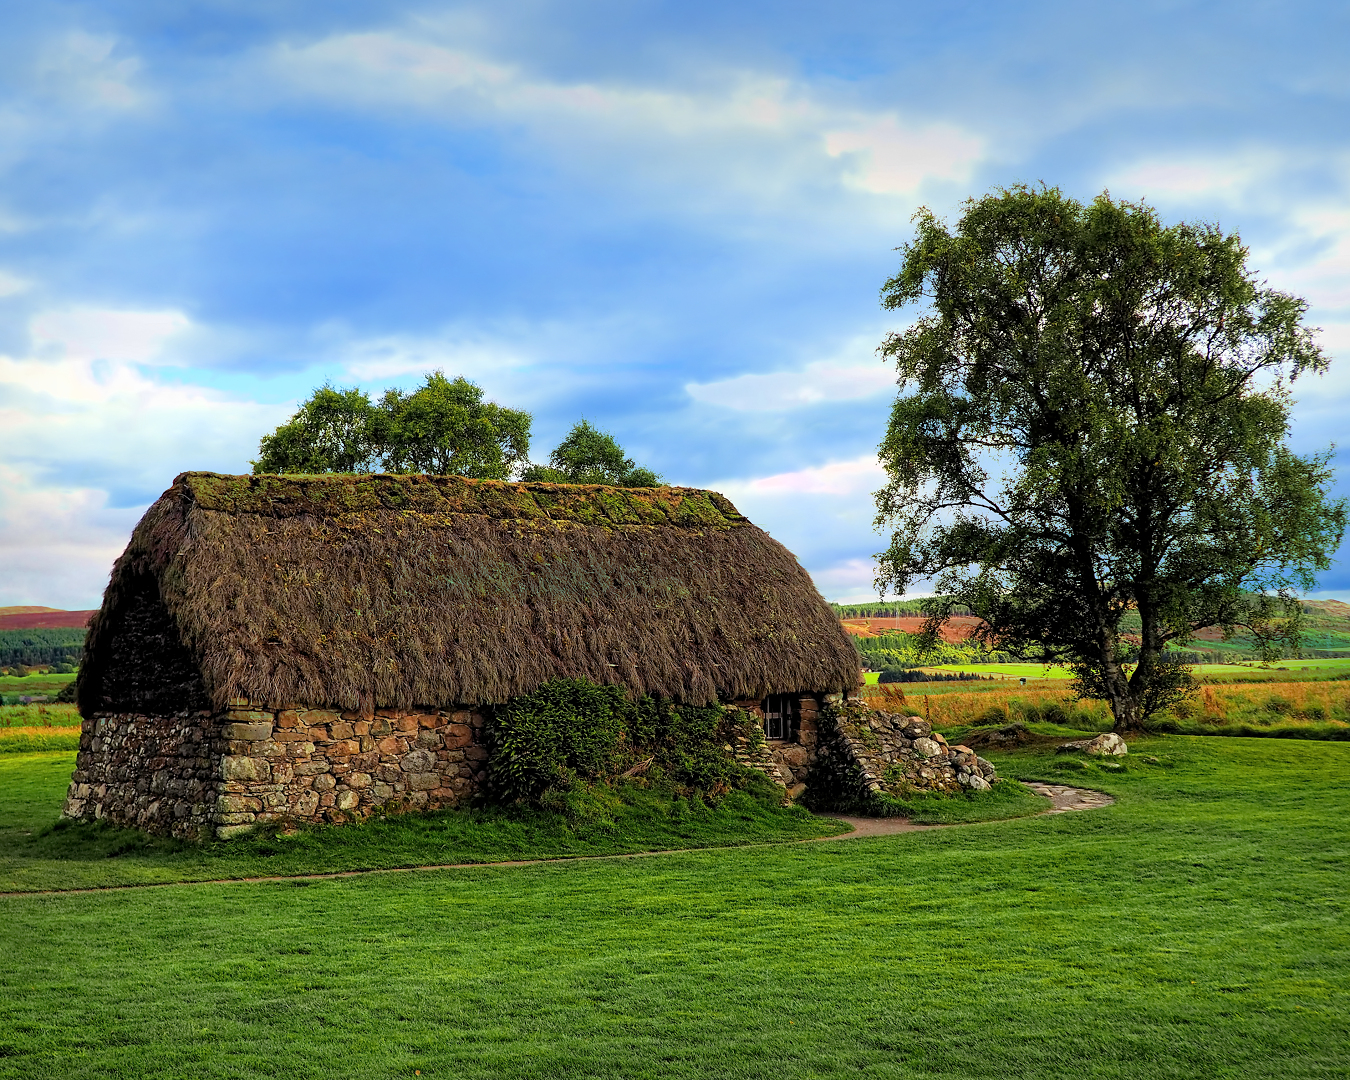 One of the last original structures at Culloden Moor Battle Field.